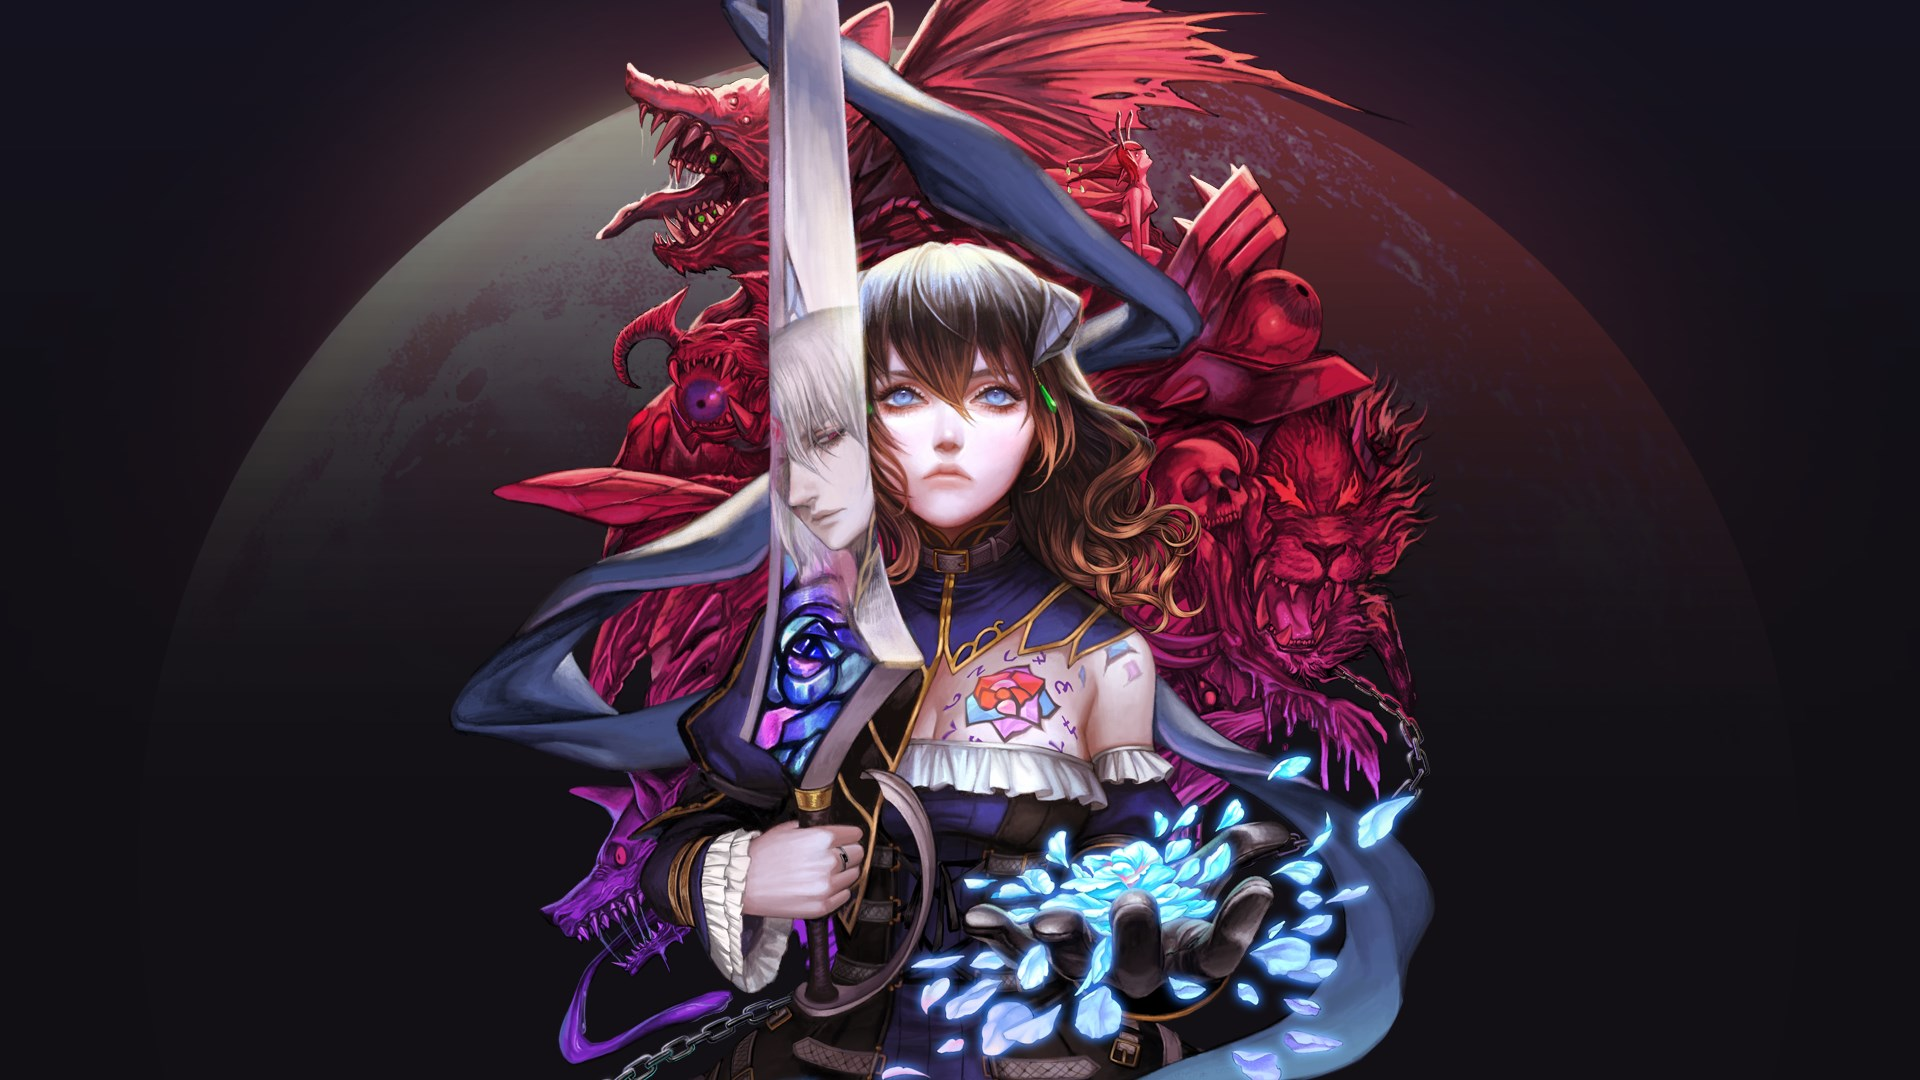 bloodstained ritual of the night art artwork igarashi